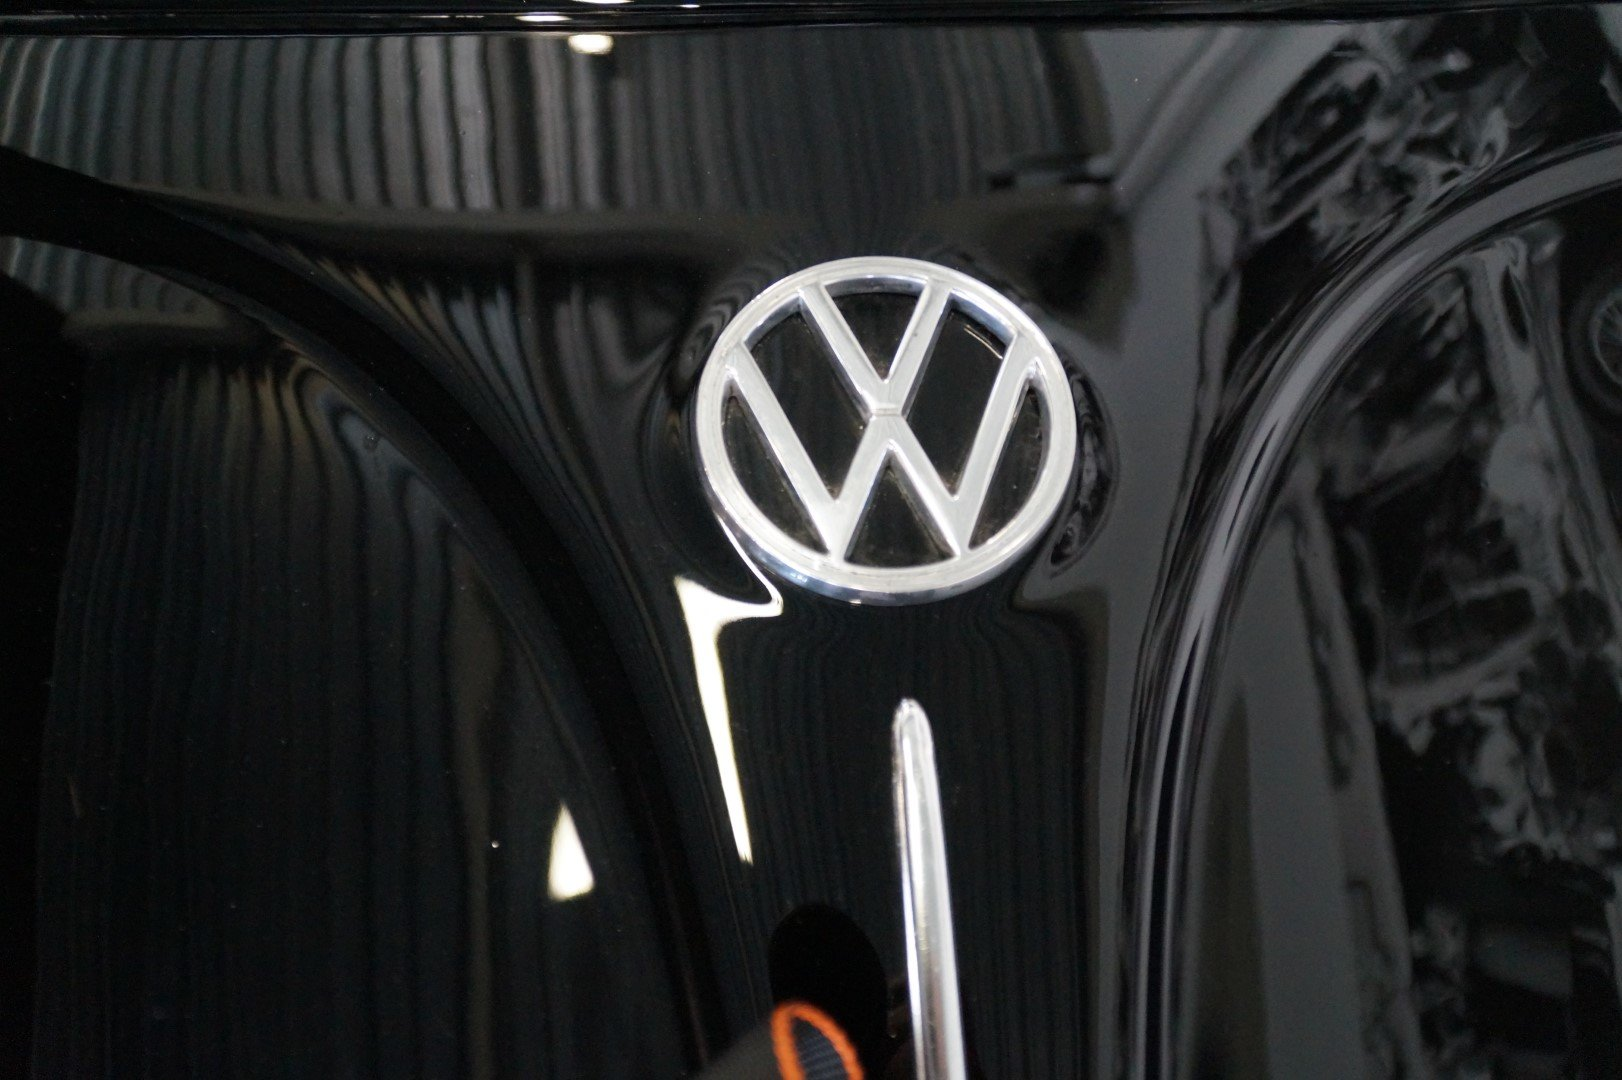 VOLKSWAGEN BEETLE matching numbers fully restored (1967) For Sale (picture 6 of 6)